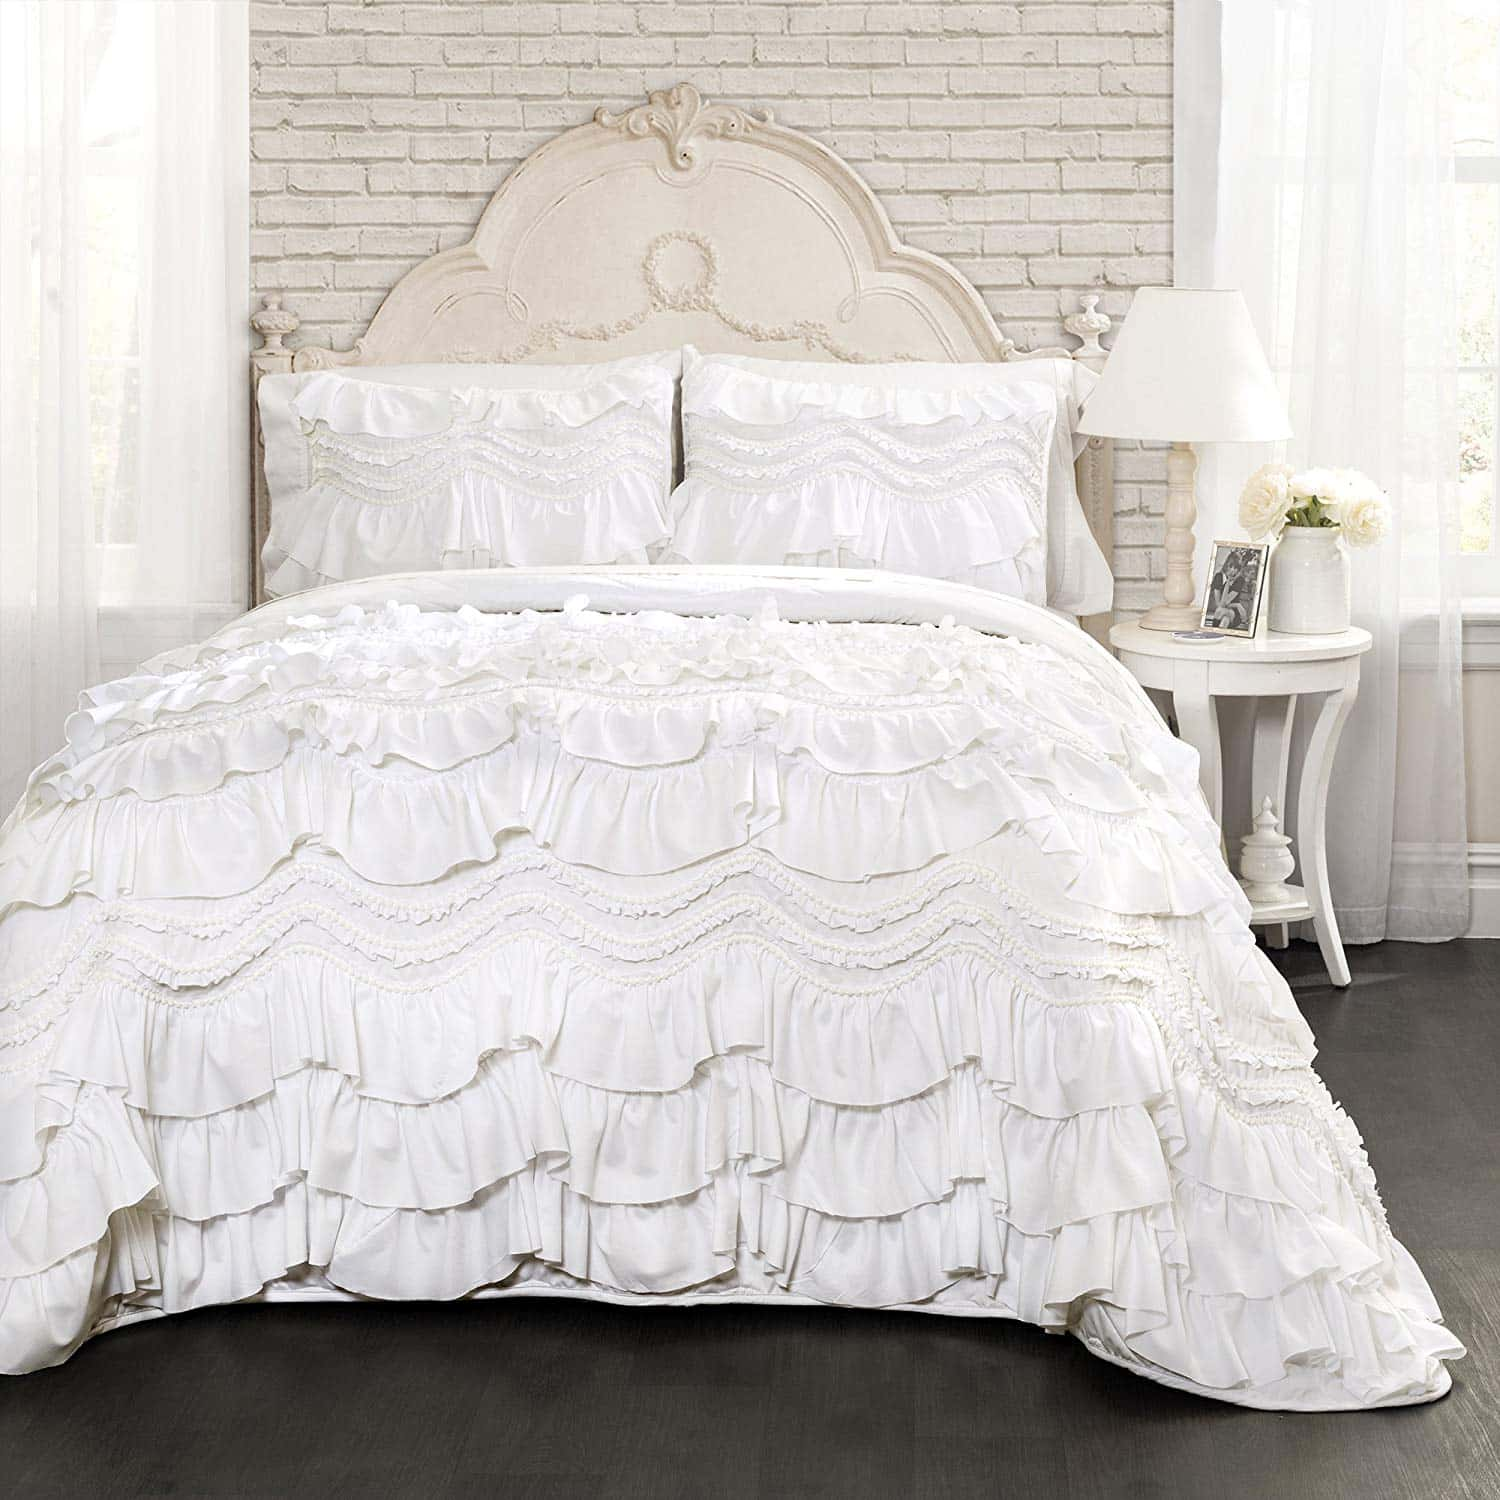 farmhouse-bedding-ruffled